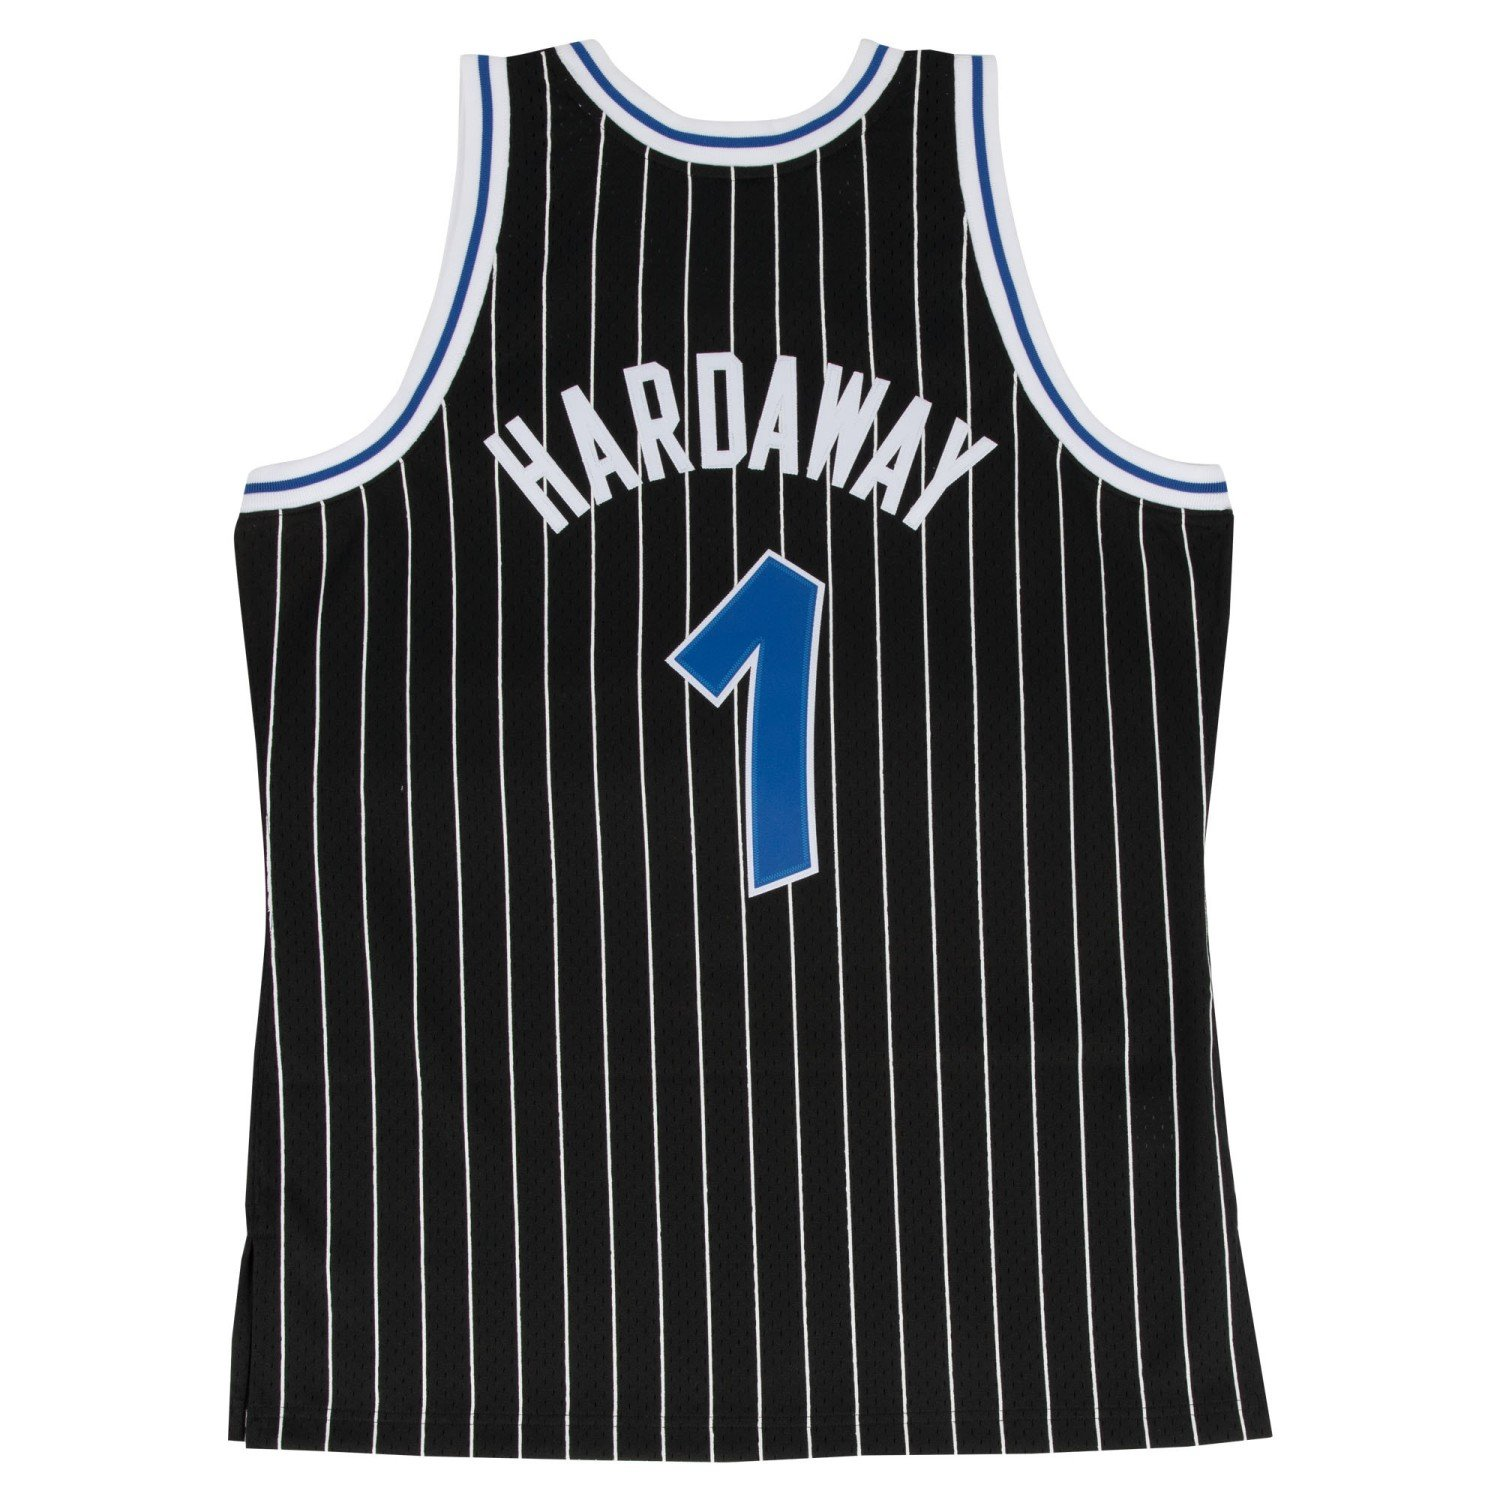 afcab5e5f Amazon.com   Penny Hardaway Orlando Magic Mitchell and Ness Men s Black  Throwback Jesey   Clothing